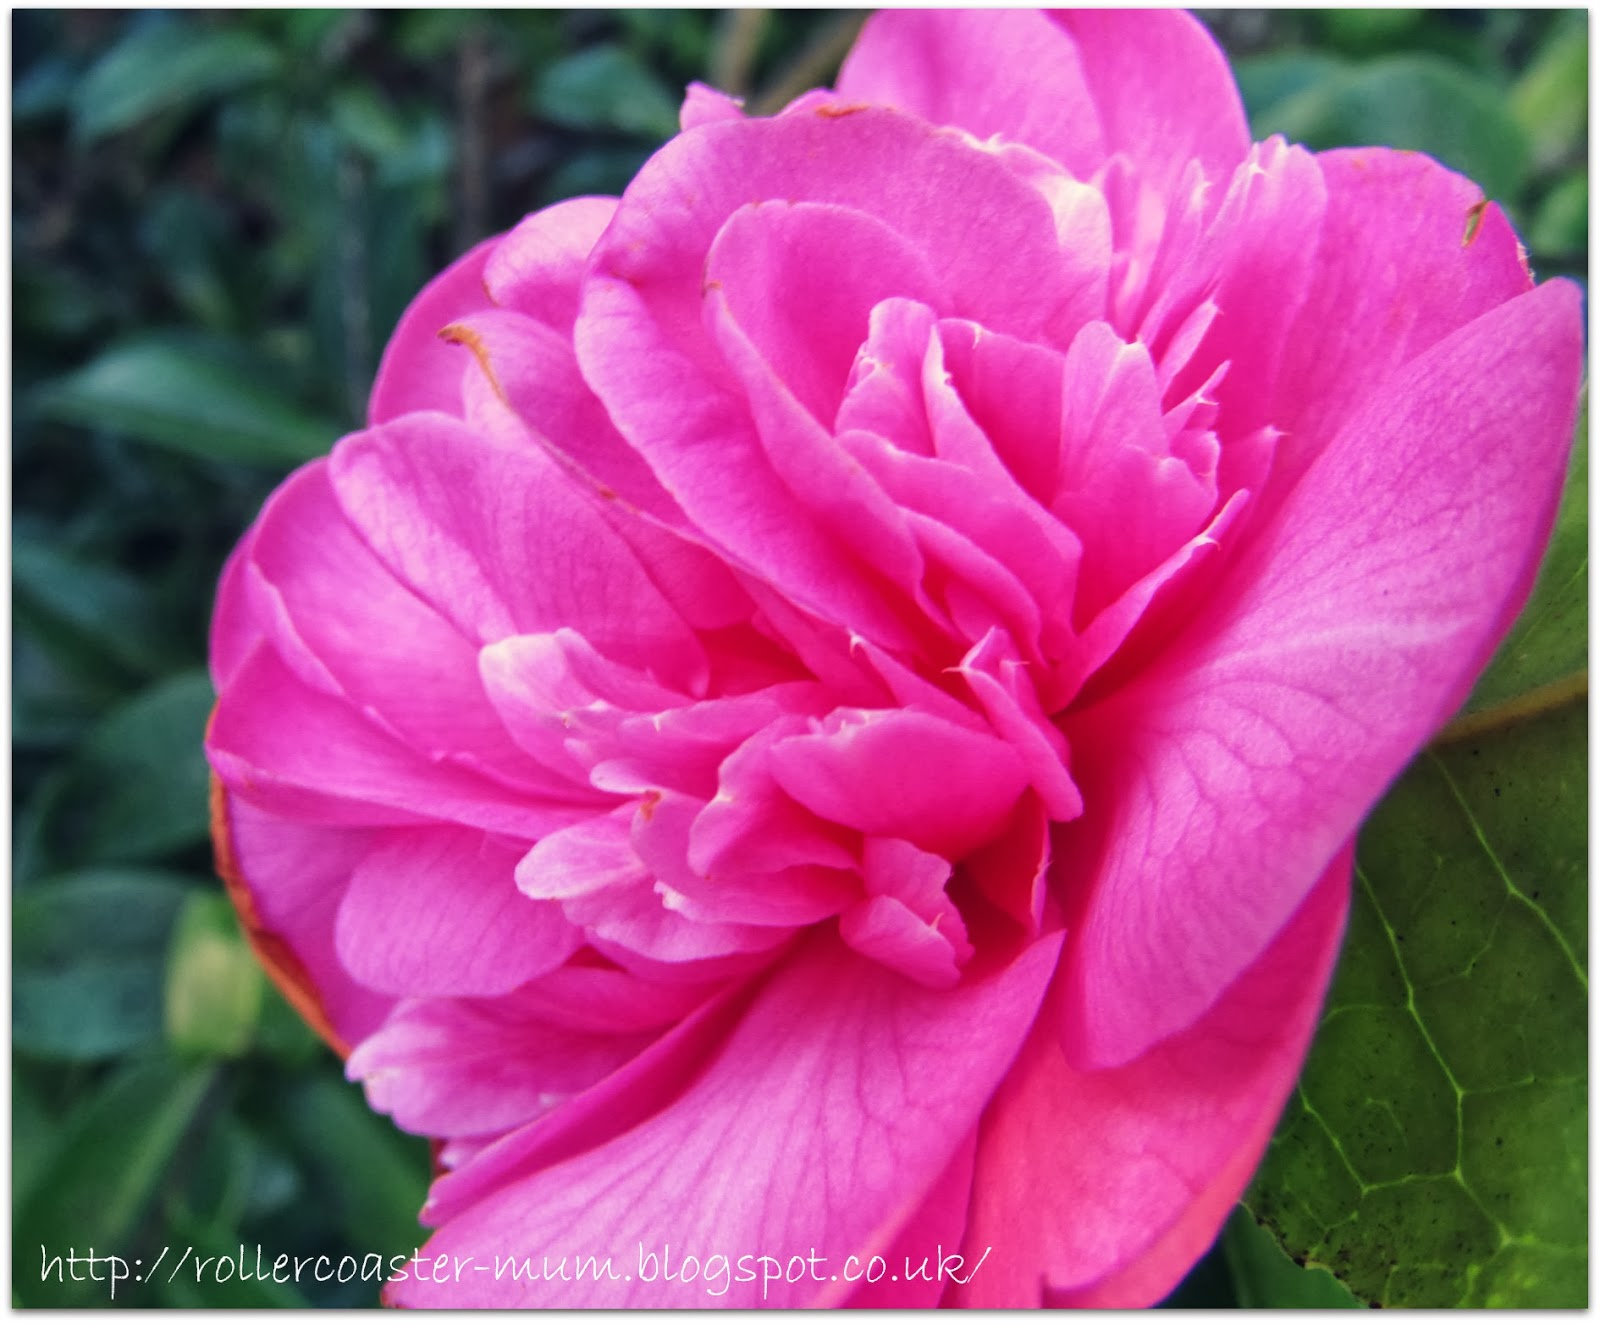 candy pink Camellia flower